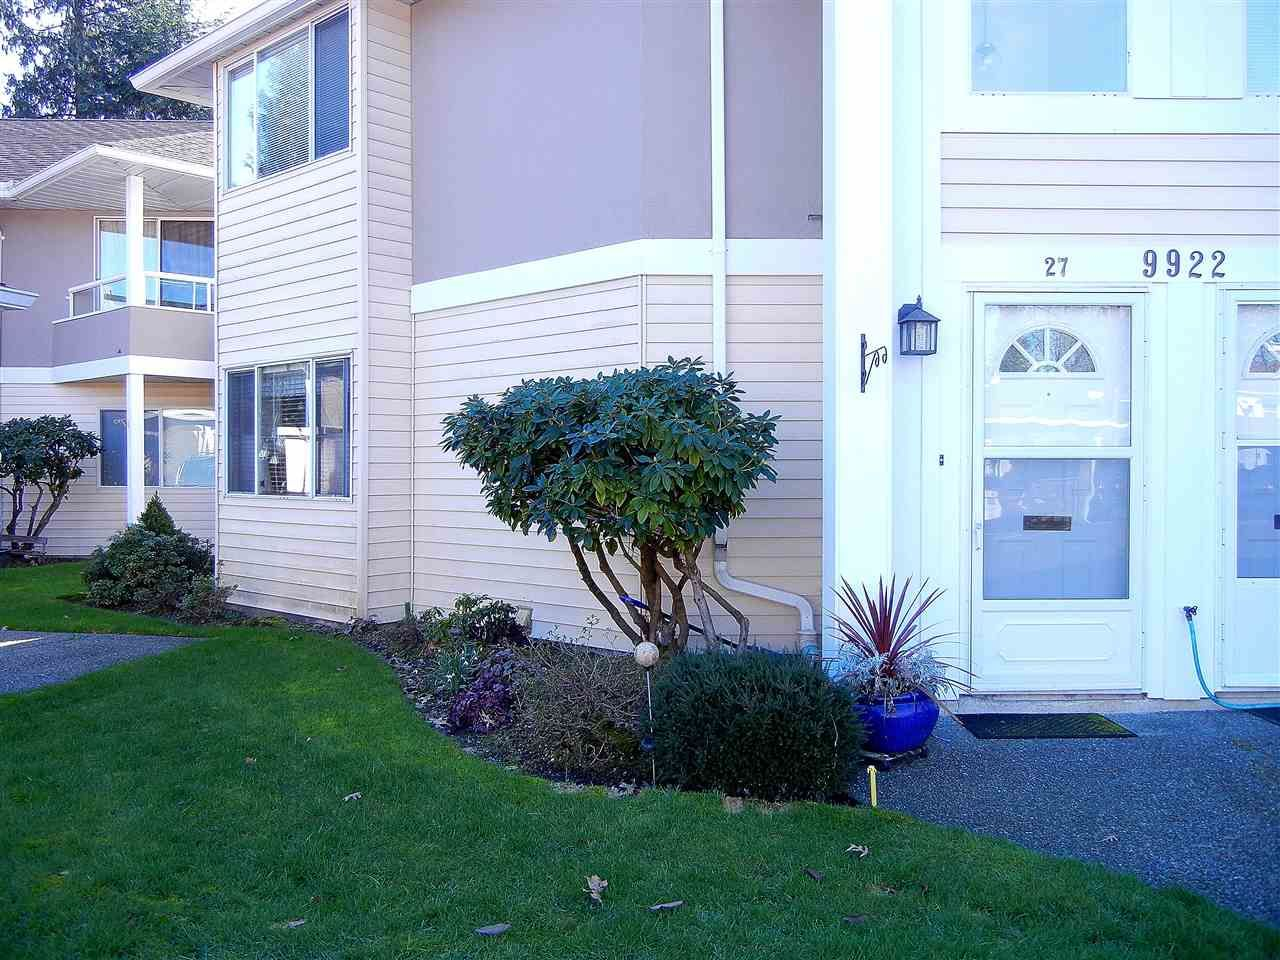 Main Photo: 27 9922 148 STREET in Surrey: Guildford Townhouse for sale (North Surrey)  : MLS®# R2031624